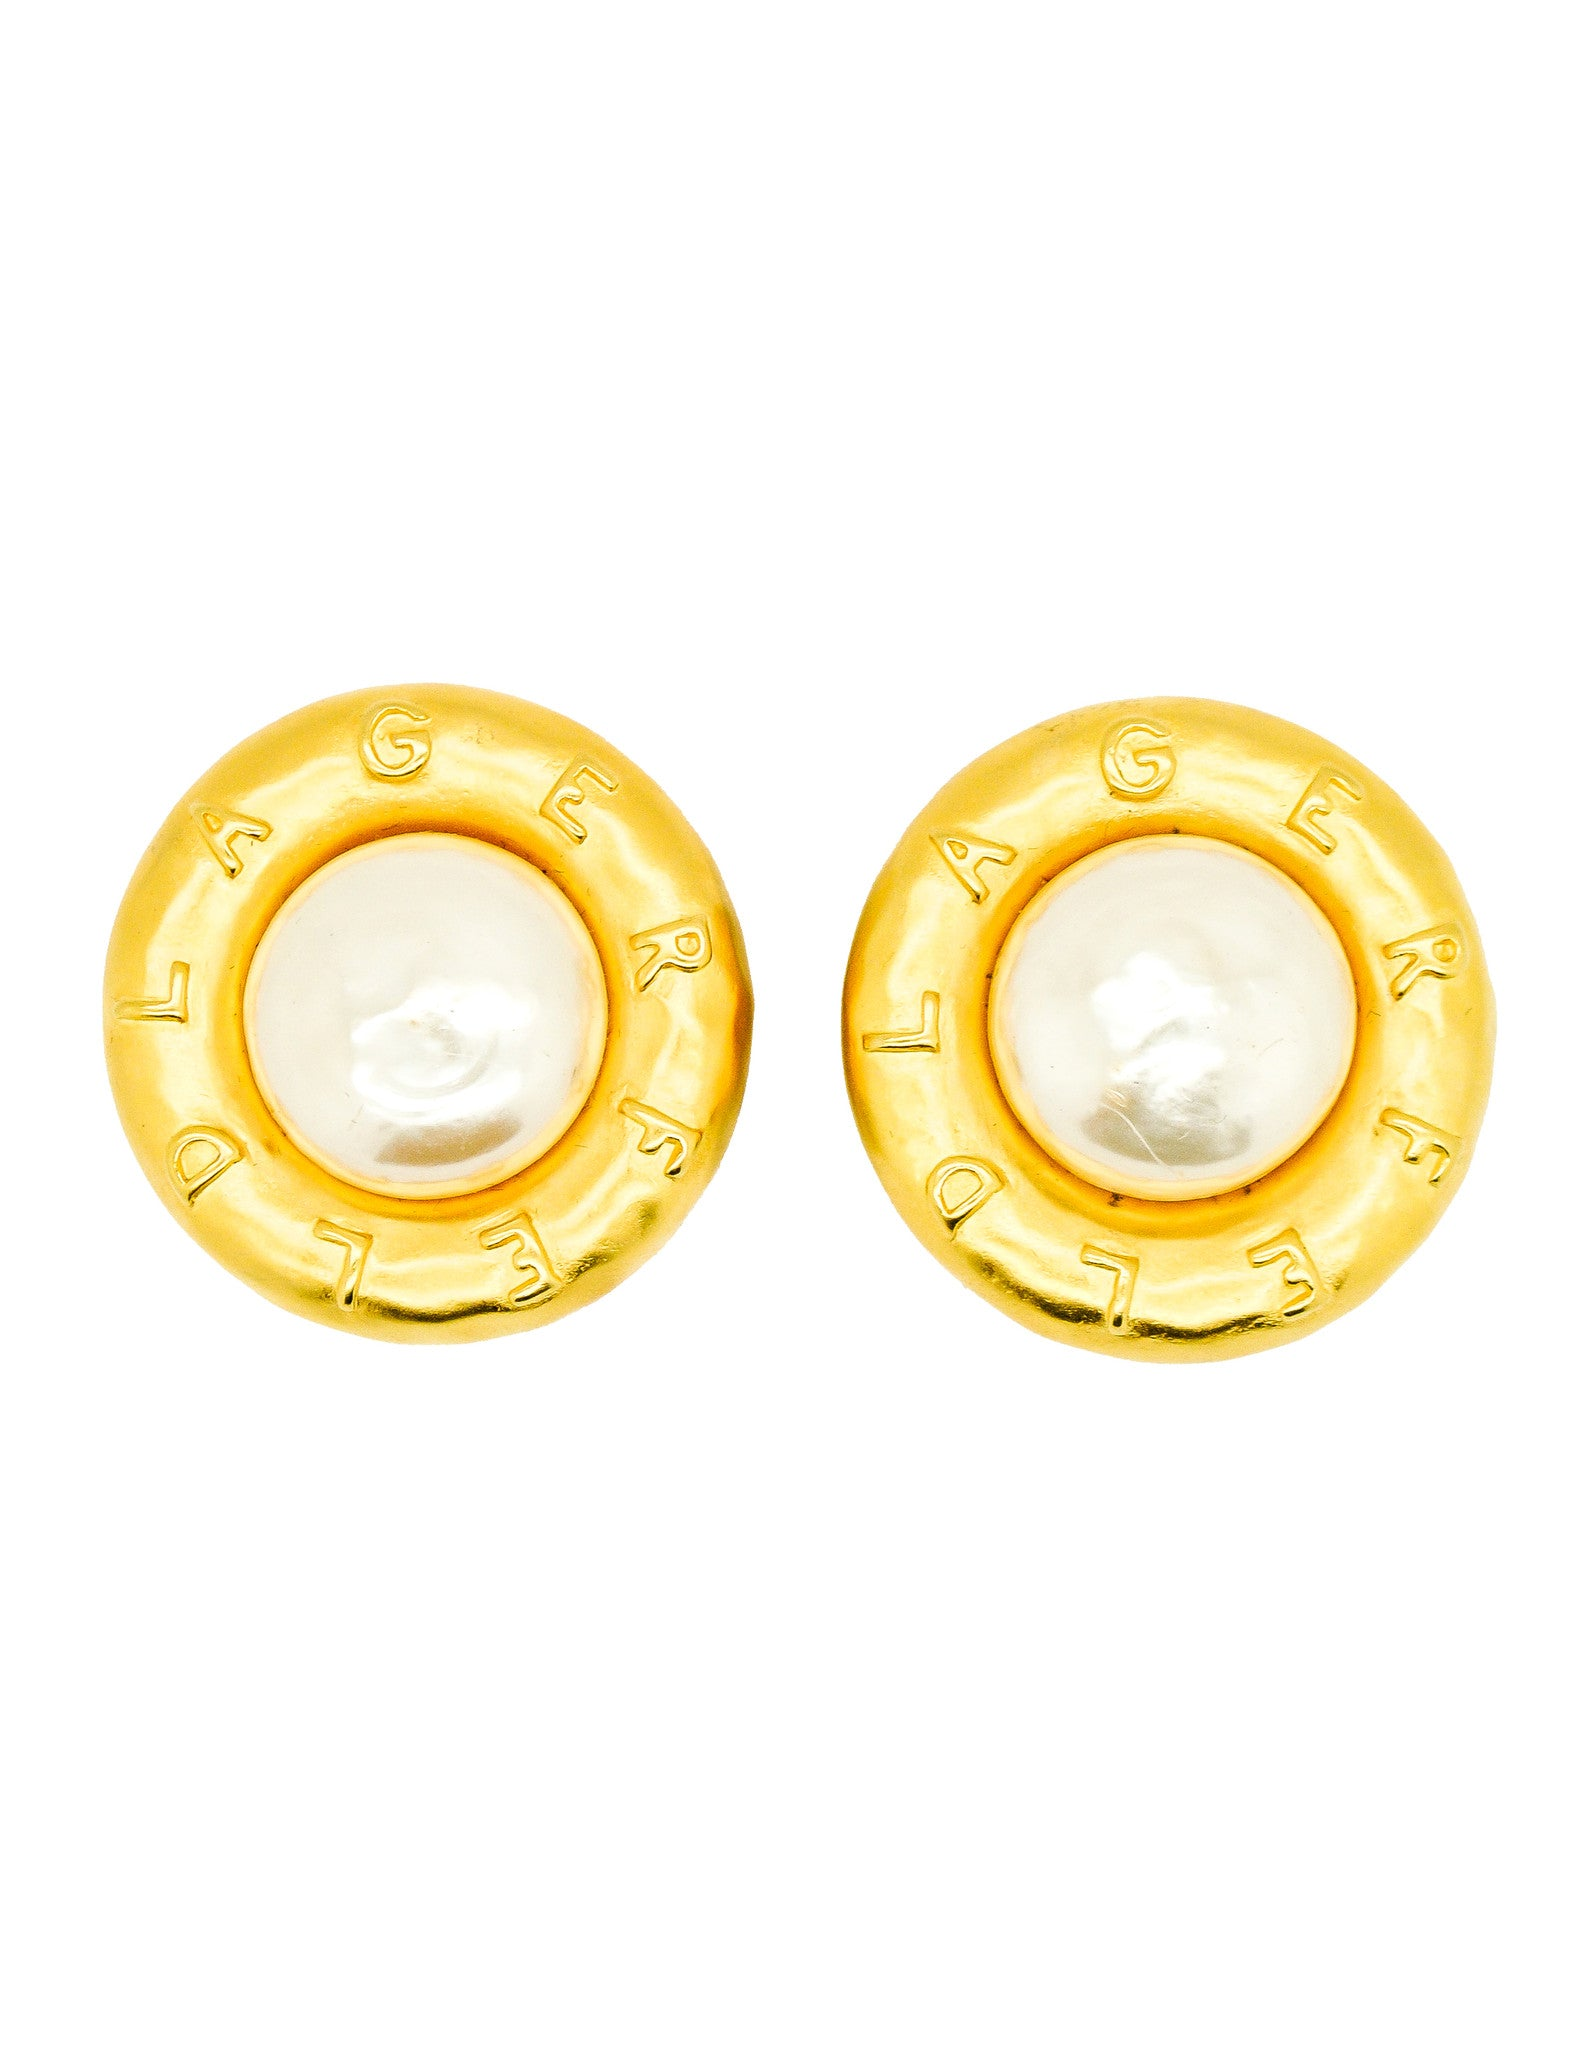 Karl Lagerfeld Vintage Brushed Gold Large Signature Pearl Earrings - Amarcord Vintage Fashion  - 1